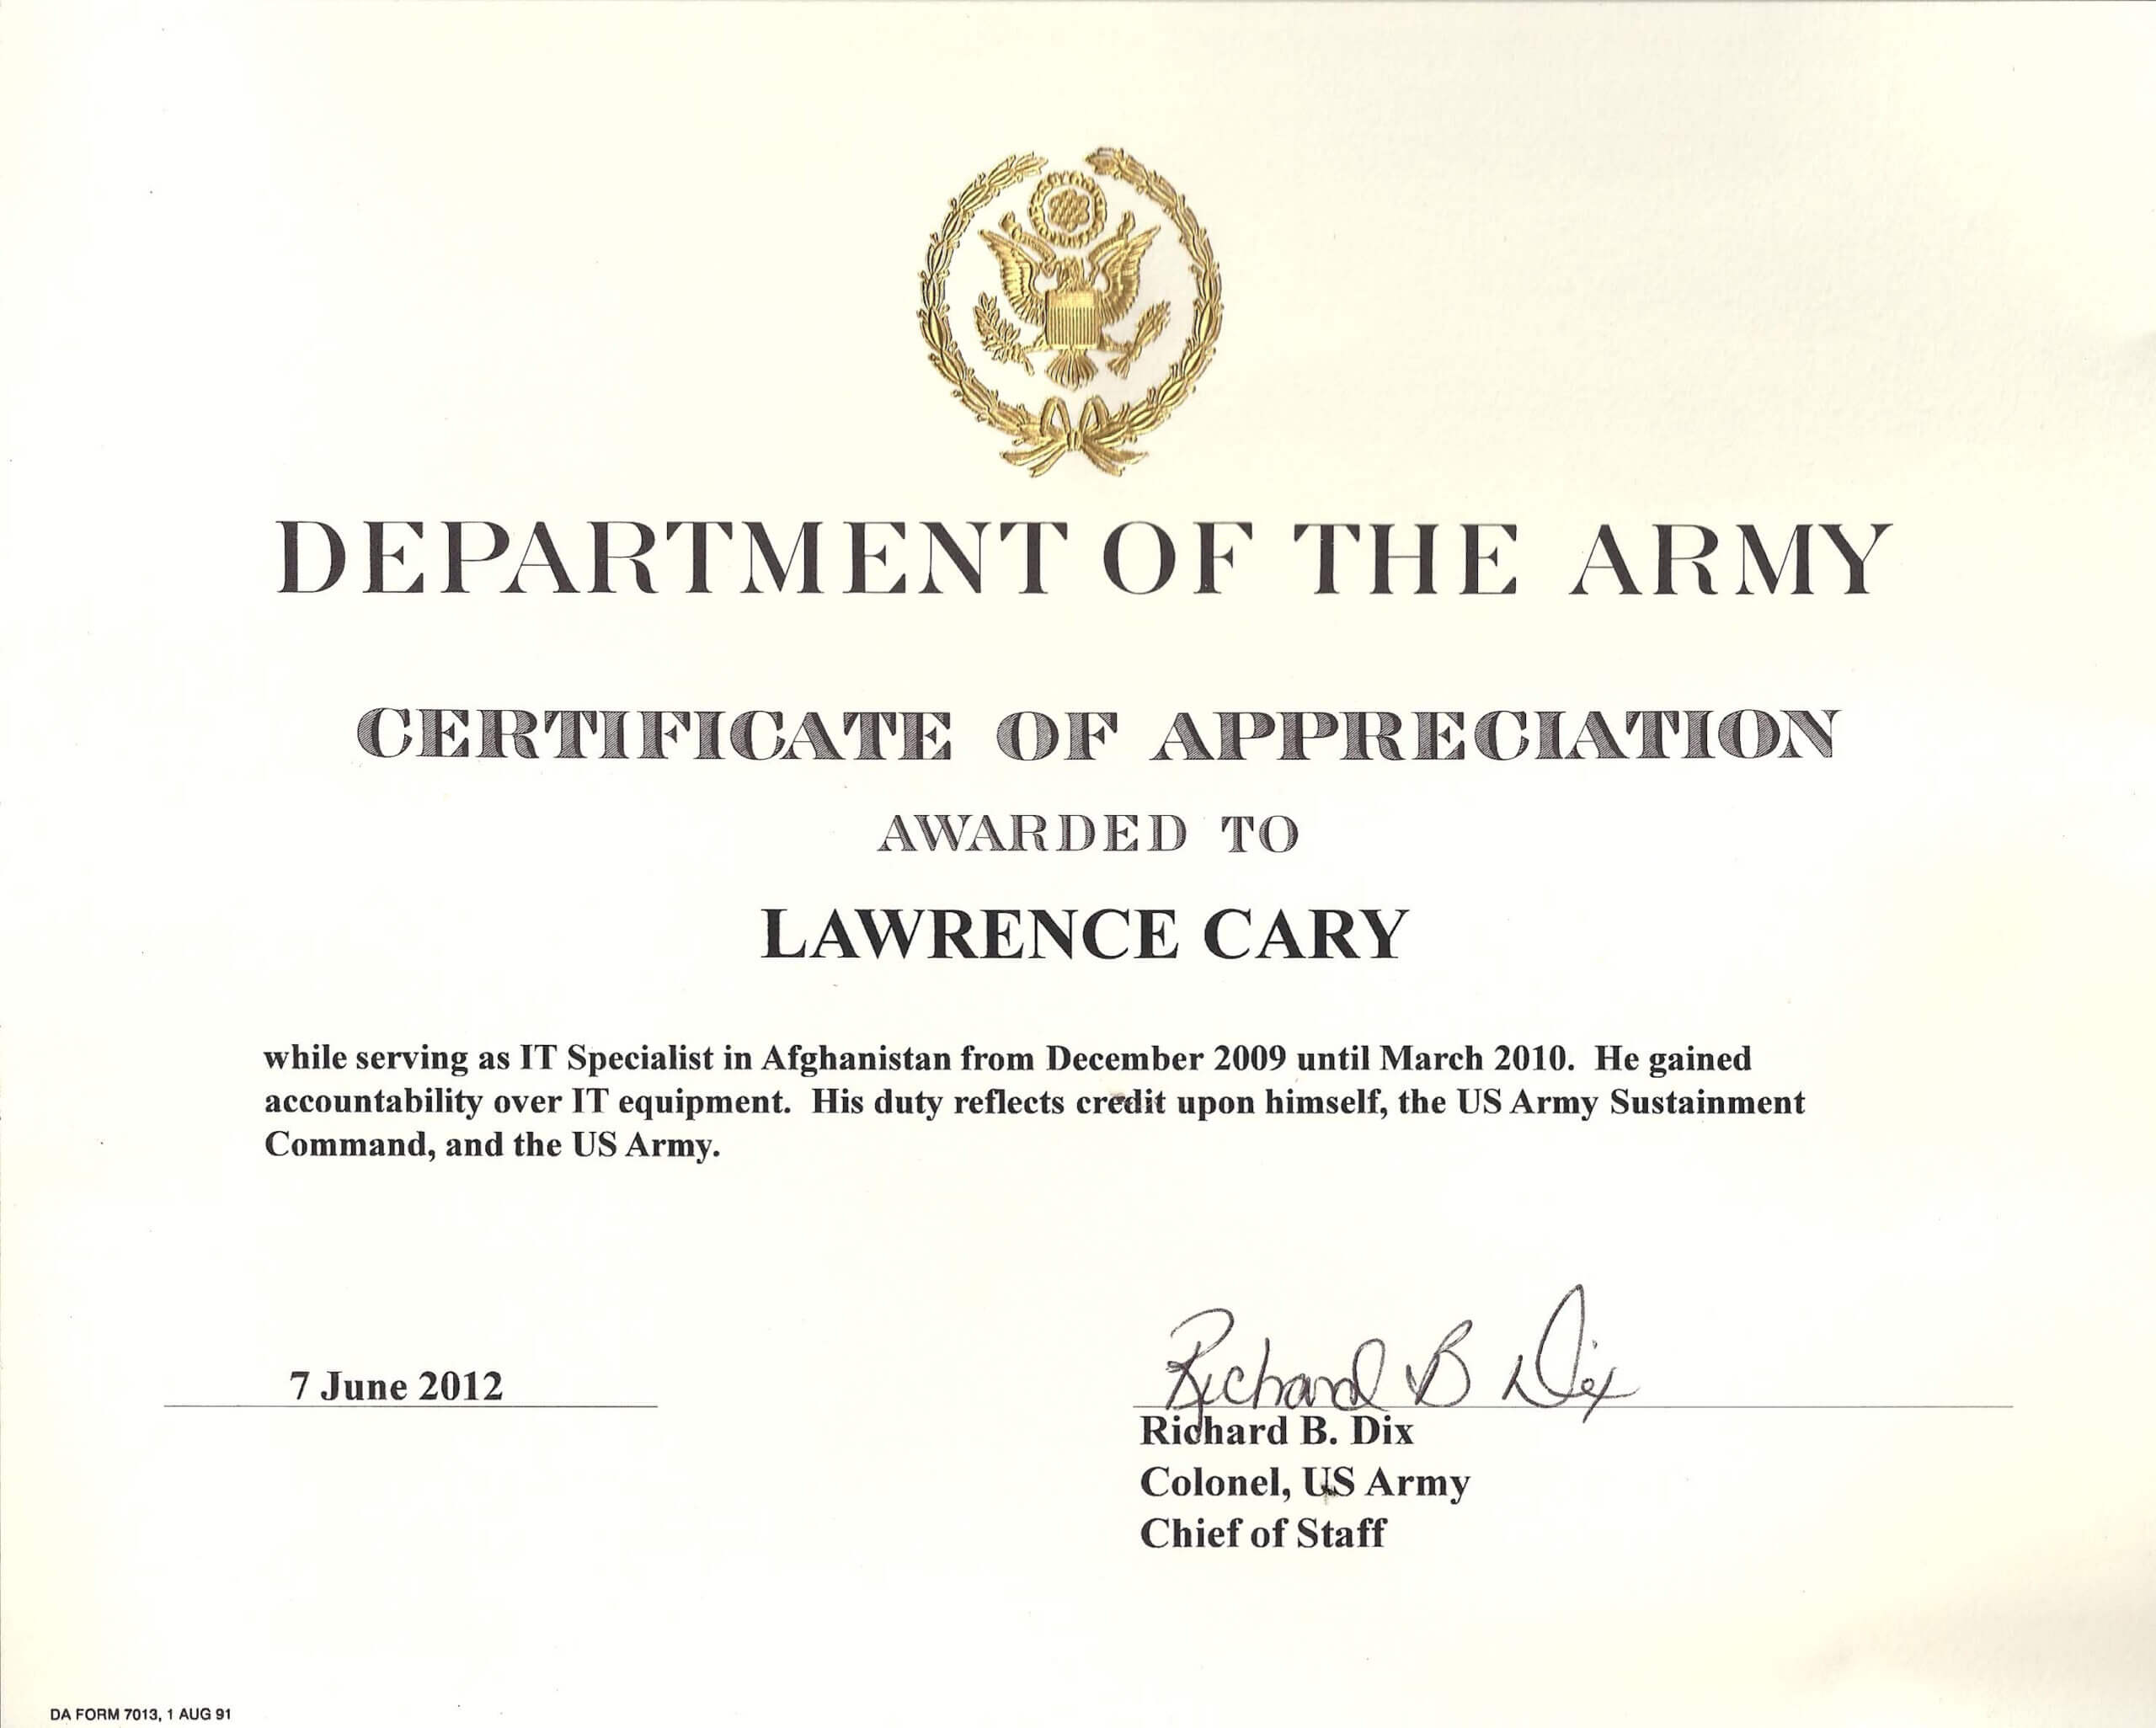 Army Certificate Of Achievement Template Within Certificate Of Achievement Army Template